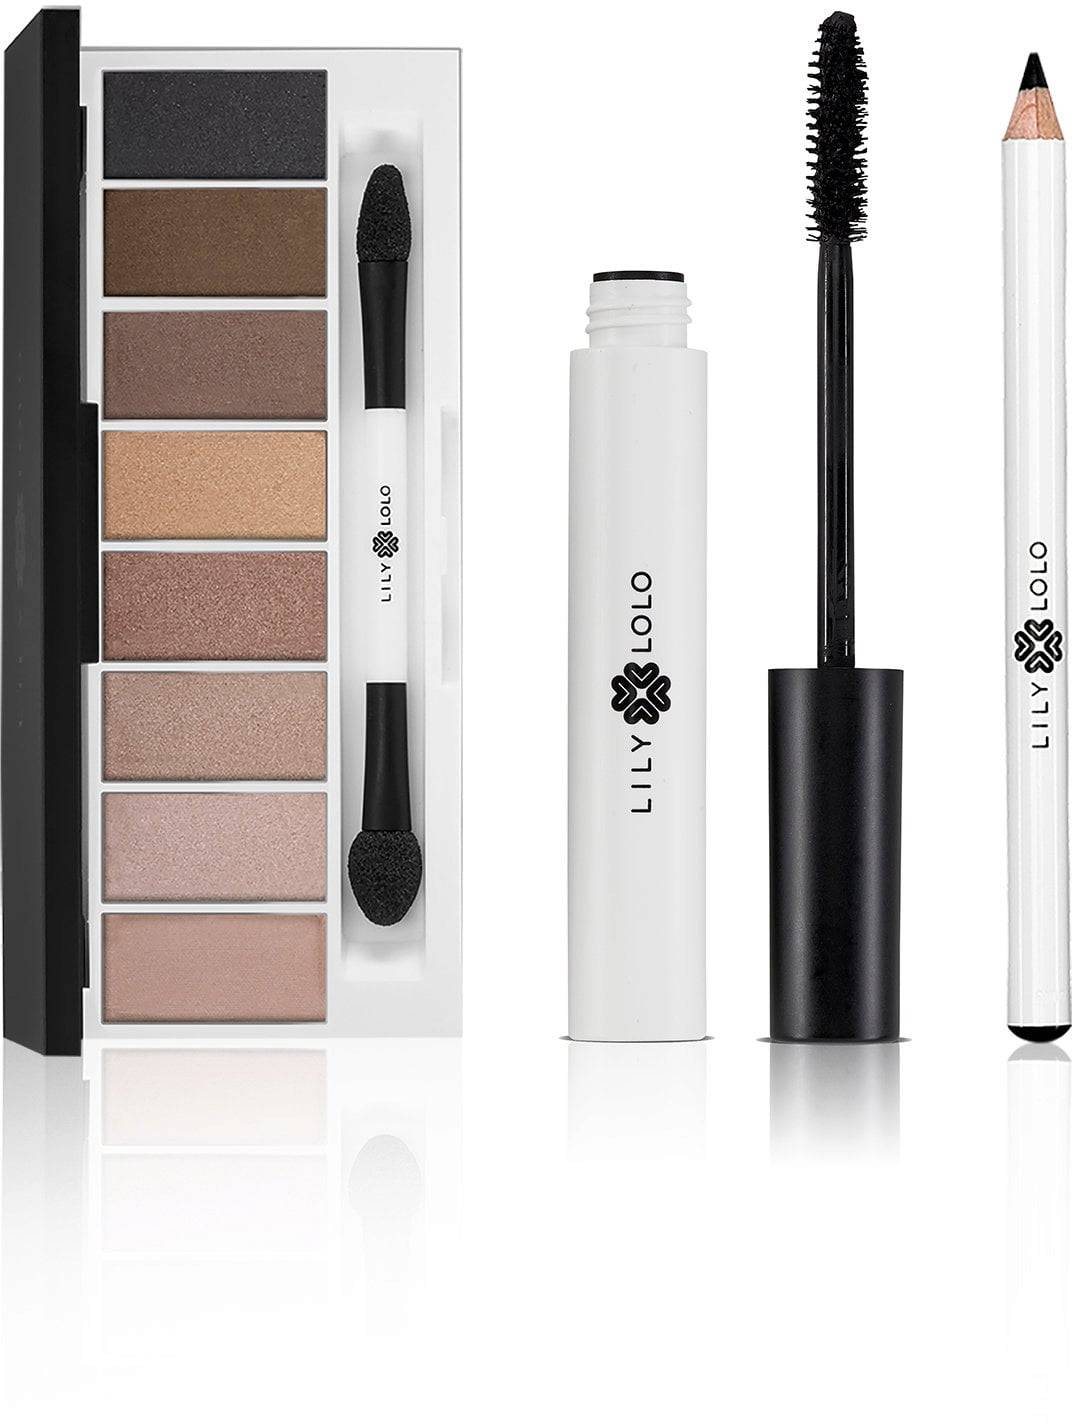 Lily Lolo Iconic Eye Collection - 1 setti